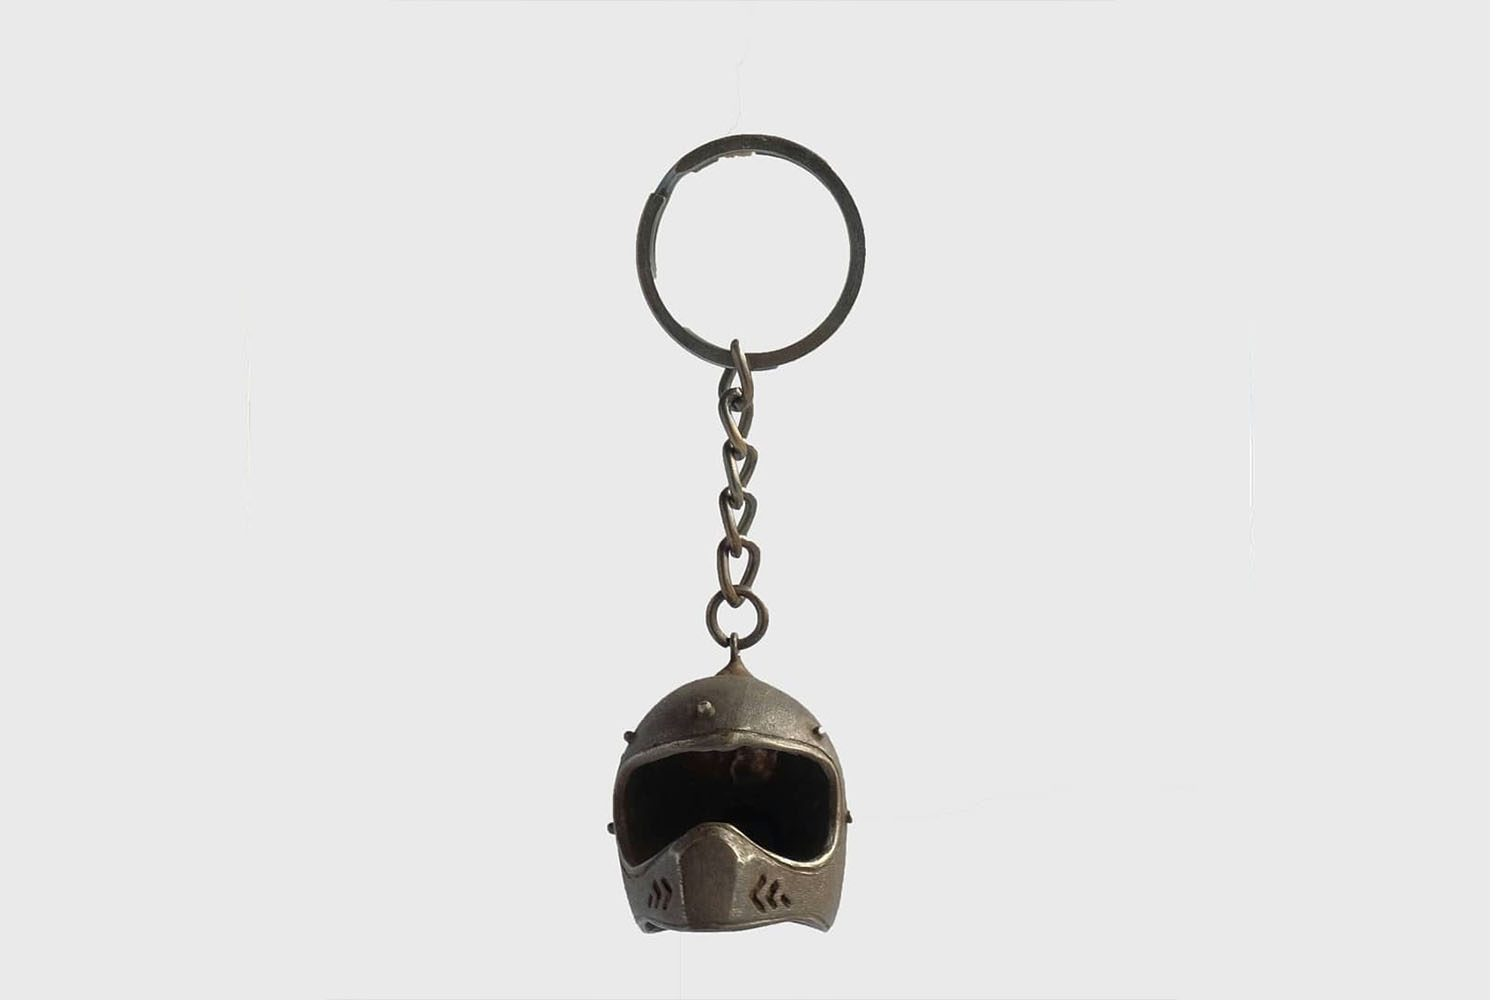 RIDERS AND RULES RR METAL KEYCHAIN